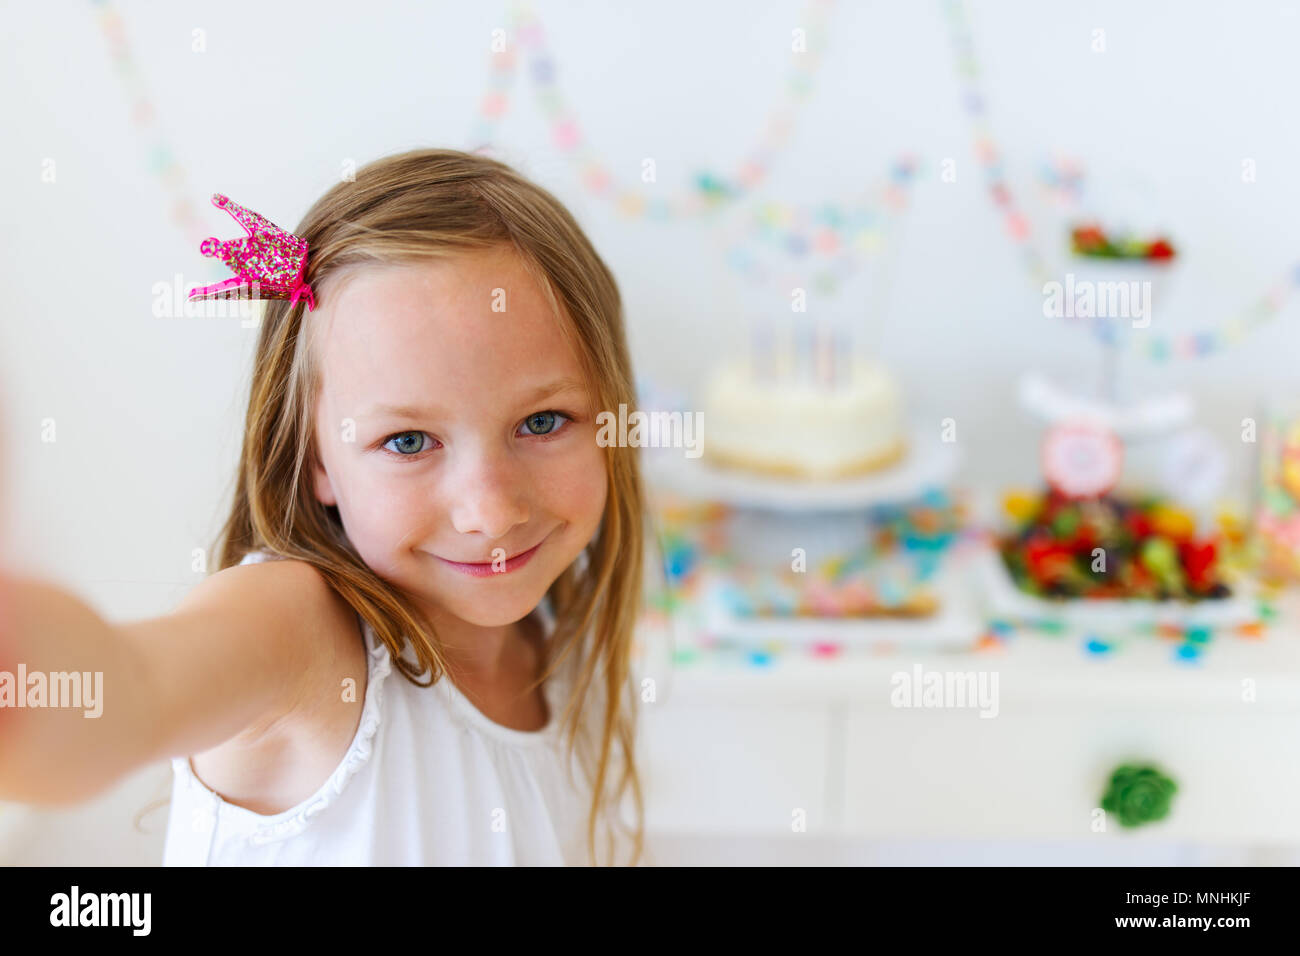 Adorable little girl with princess crown at kids birthday party taking selfie - Stock Image